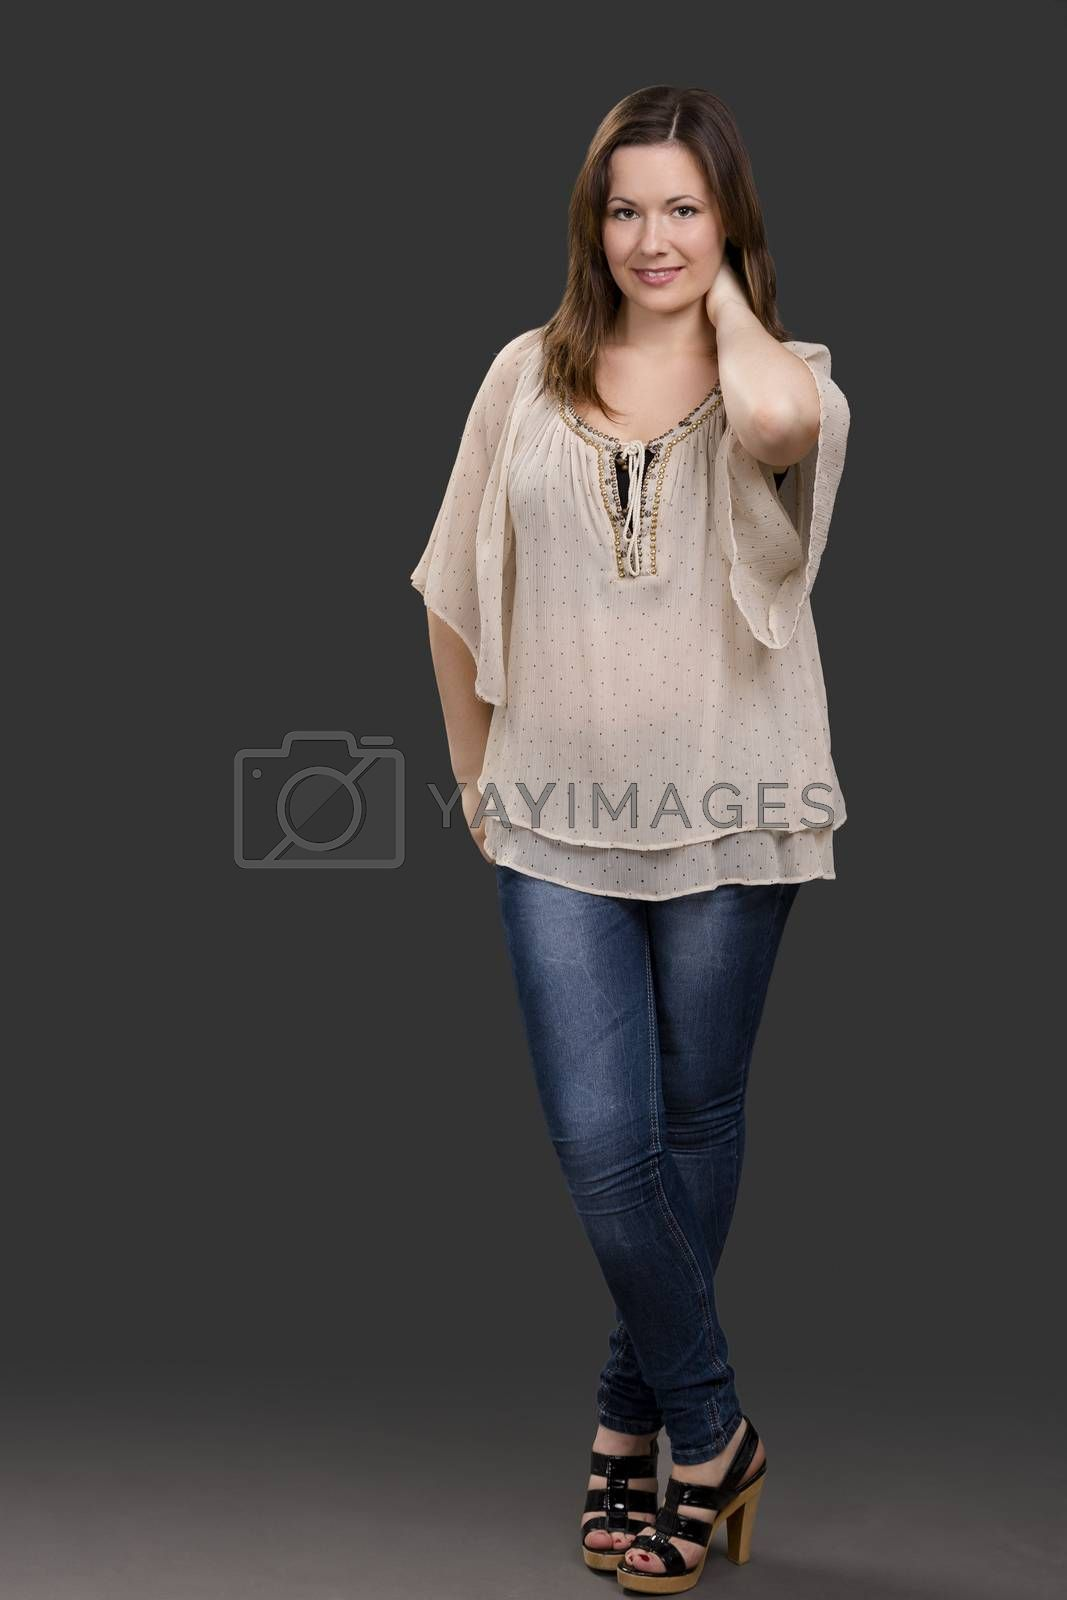 Beautiful young woman posing in a grey background